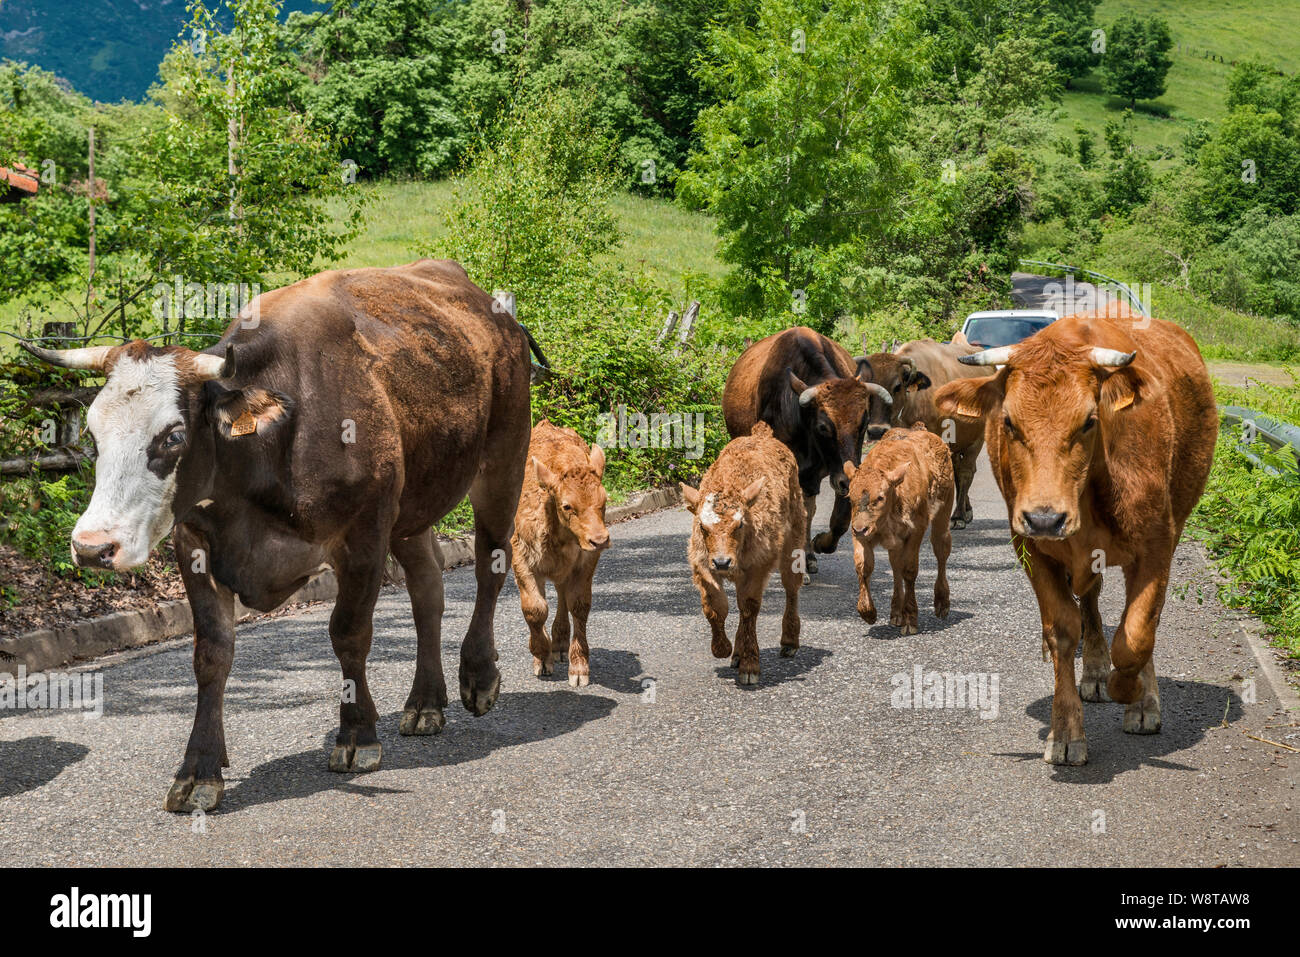 Herd of cows walking on road near village of Viego, near San Juan de Beleño, in foothills of Picos de Europa, Ponga Natural Park, Asturias, Spain Stock Photo